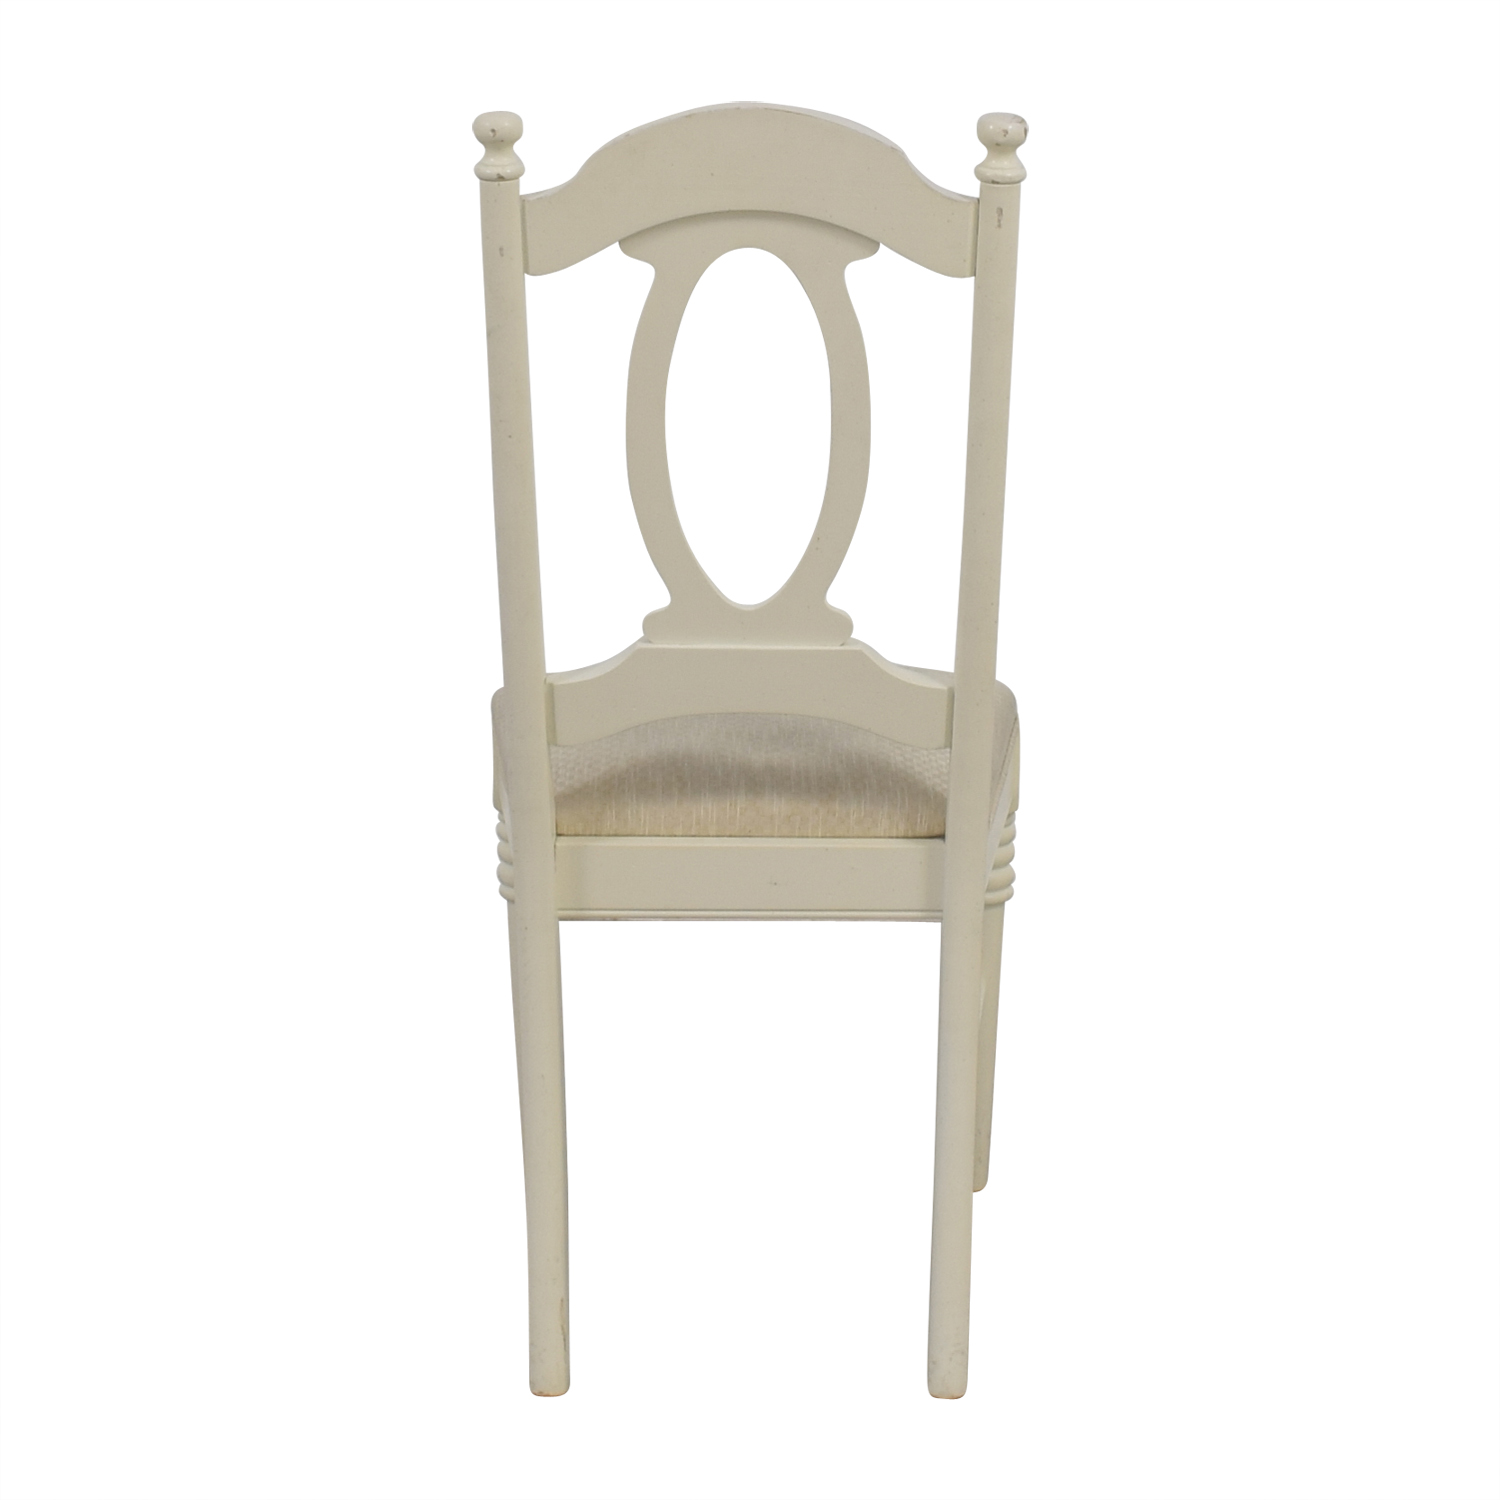 Studley Furniture Classic Accent Chair Studley Furniture